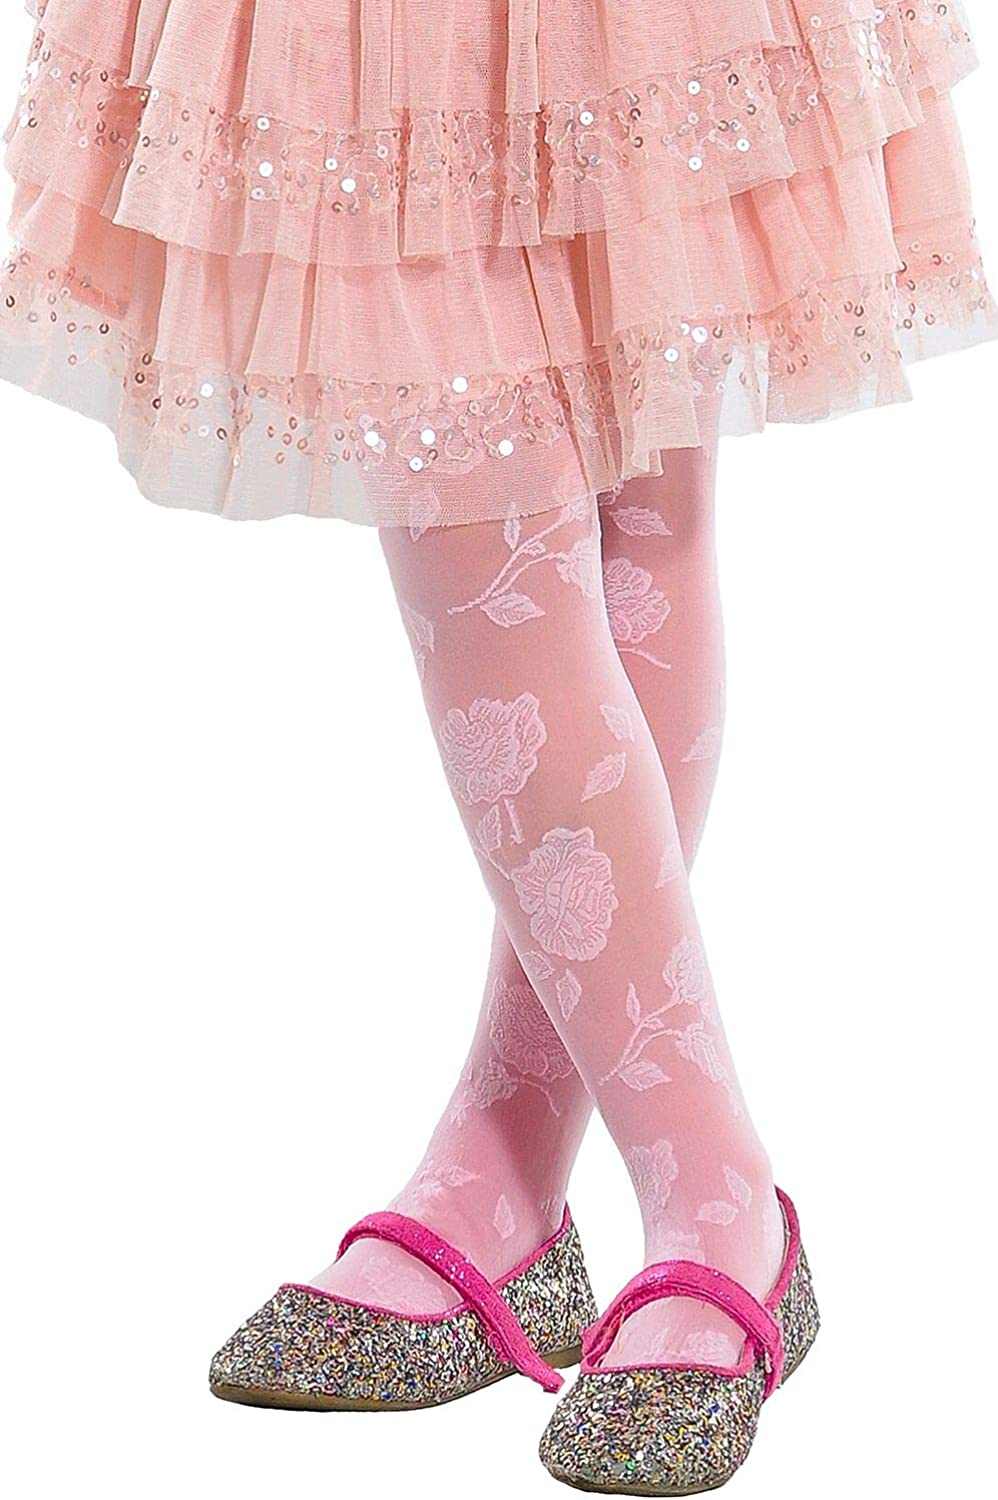 5-12 years Lady Kama Girls Patterned Tights 30 denier Rose Motive